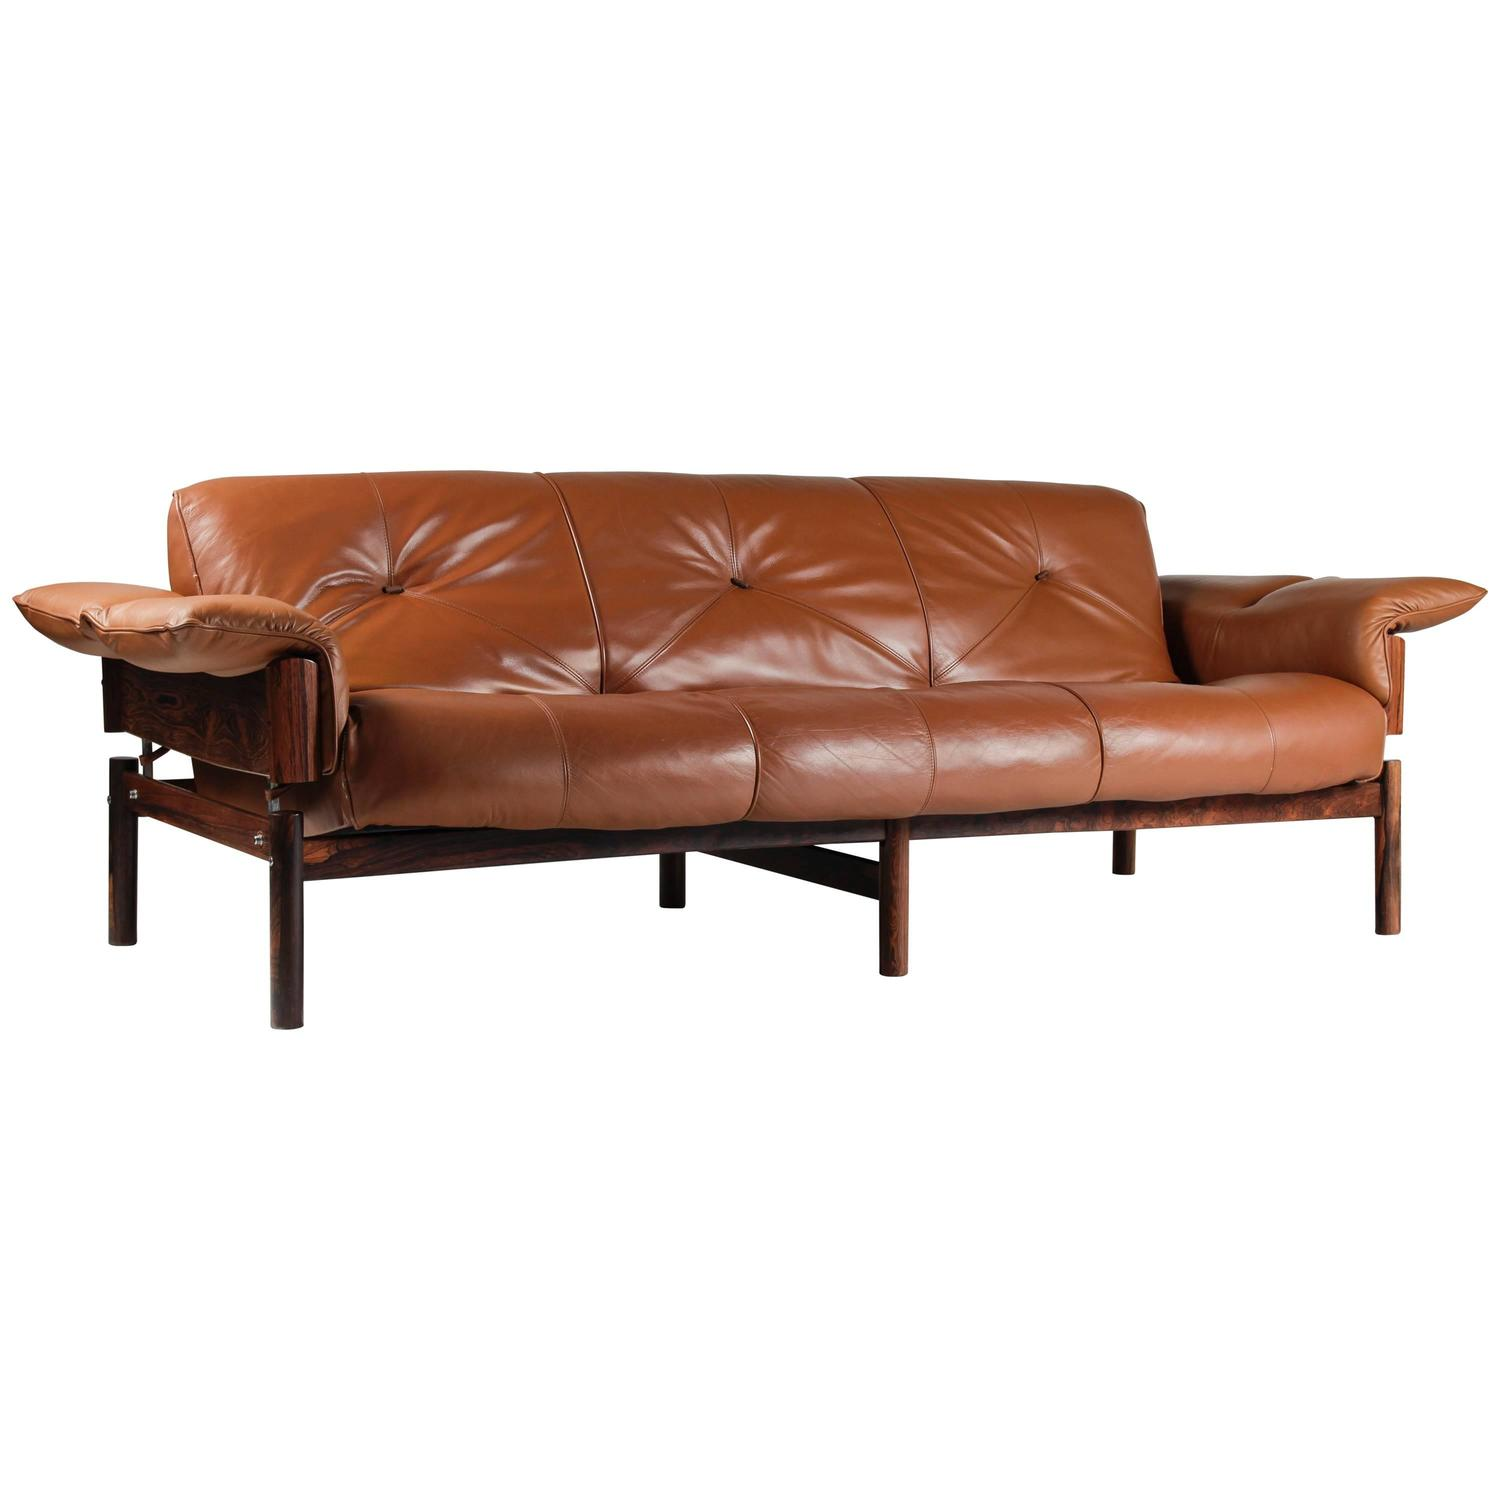 Mid Century Brazilian Sofa in Brown Leather and Rosewood by